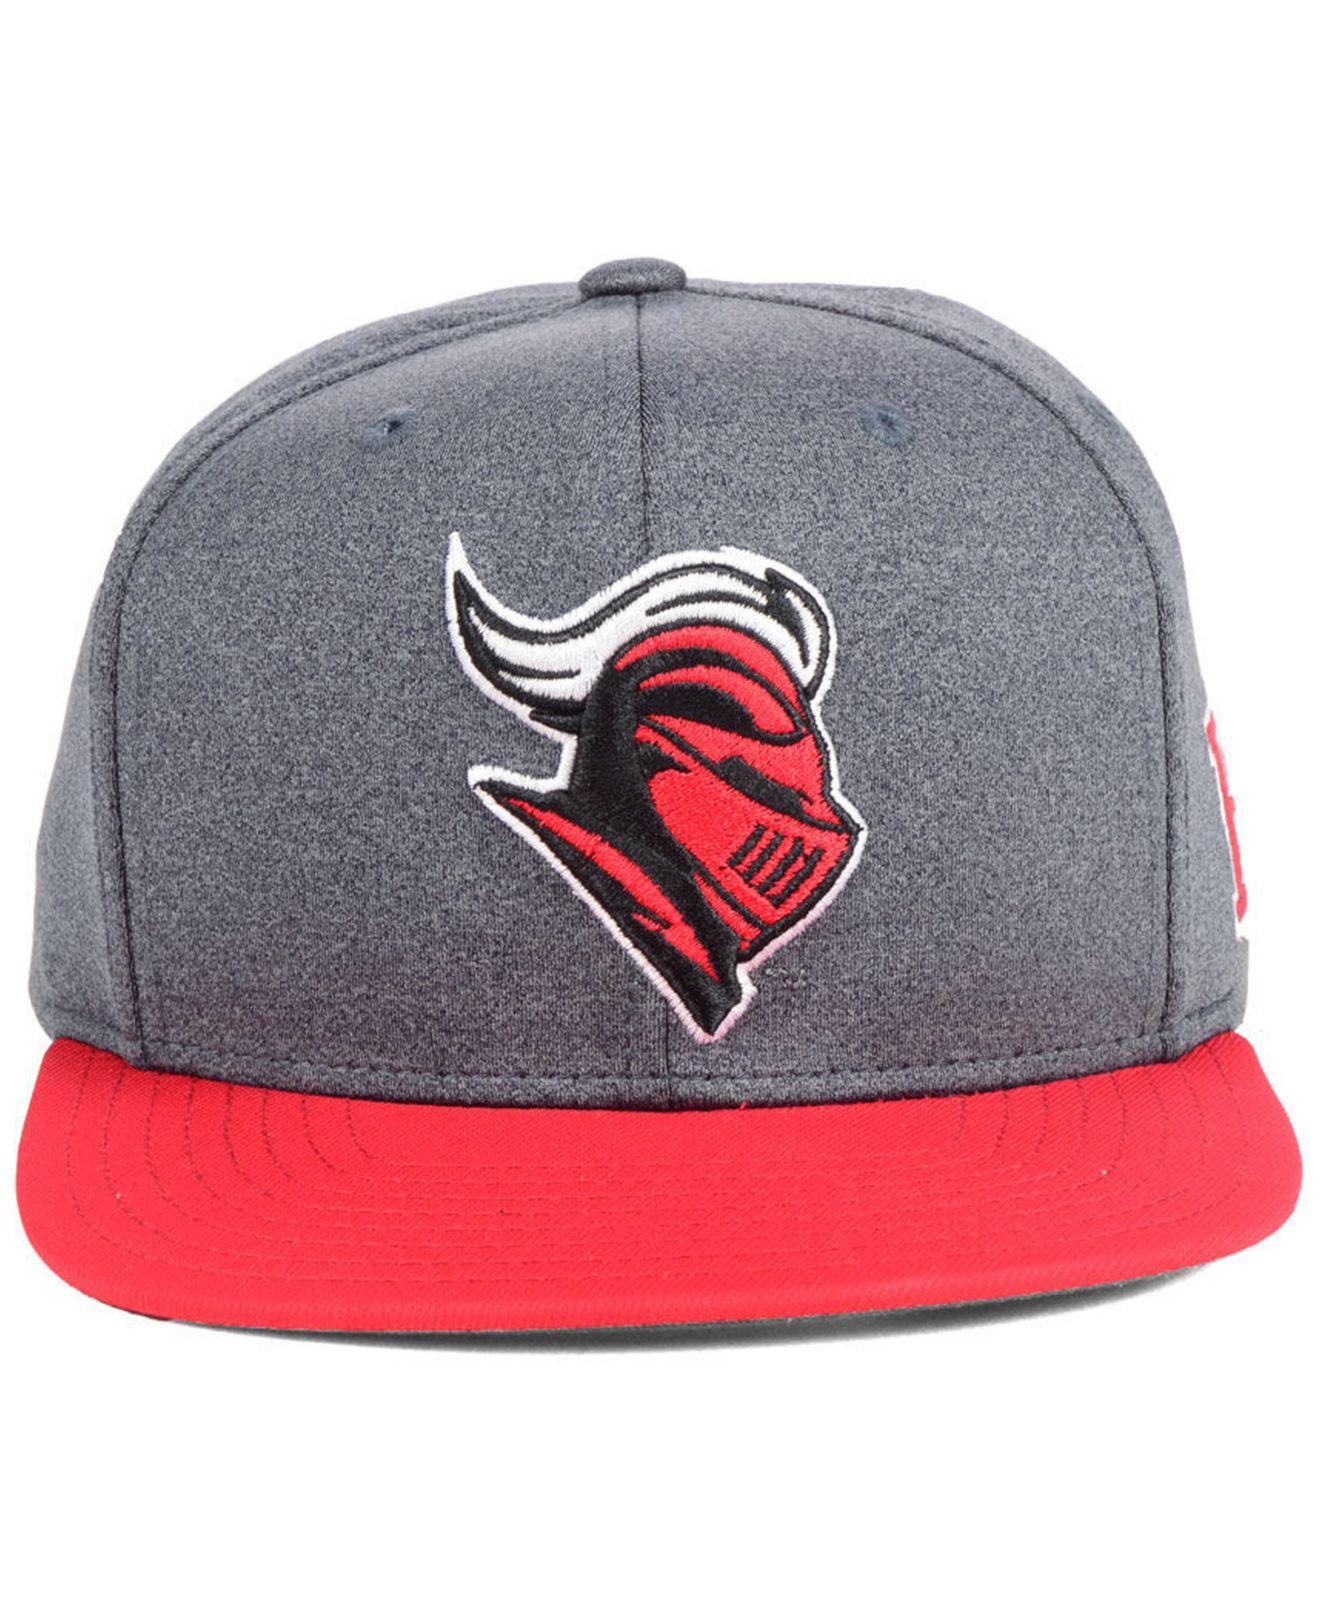 new product ef915 7dbda ... usa lyst adidas rutgers scarlet knights stadium performance snapback cap  in gray for men 25f2e 609c4